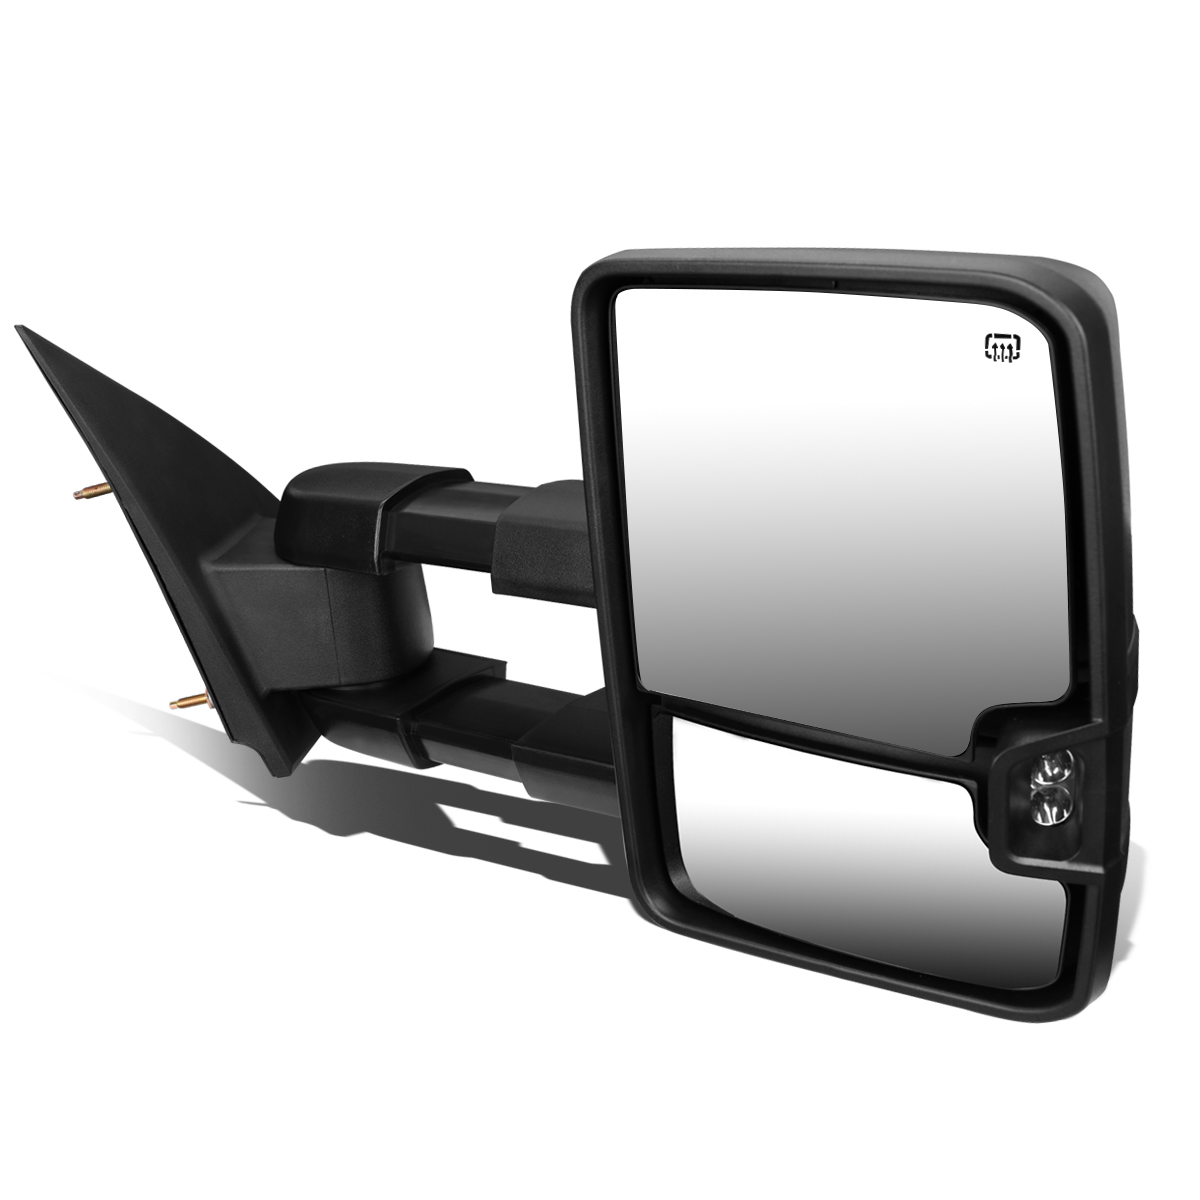 For 2003-2007 Chevy Tahoe/GMC Yukon Powered+Heated+Smoked LED Turn Signal Towing Mirror (Right/Passenger)